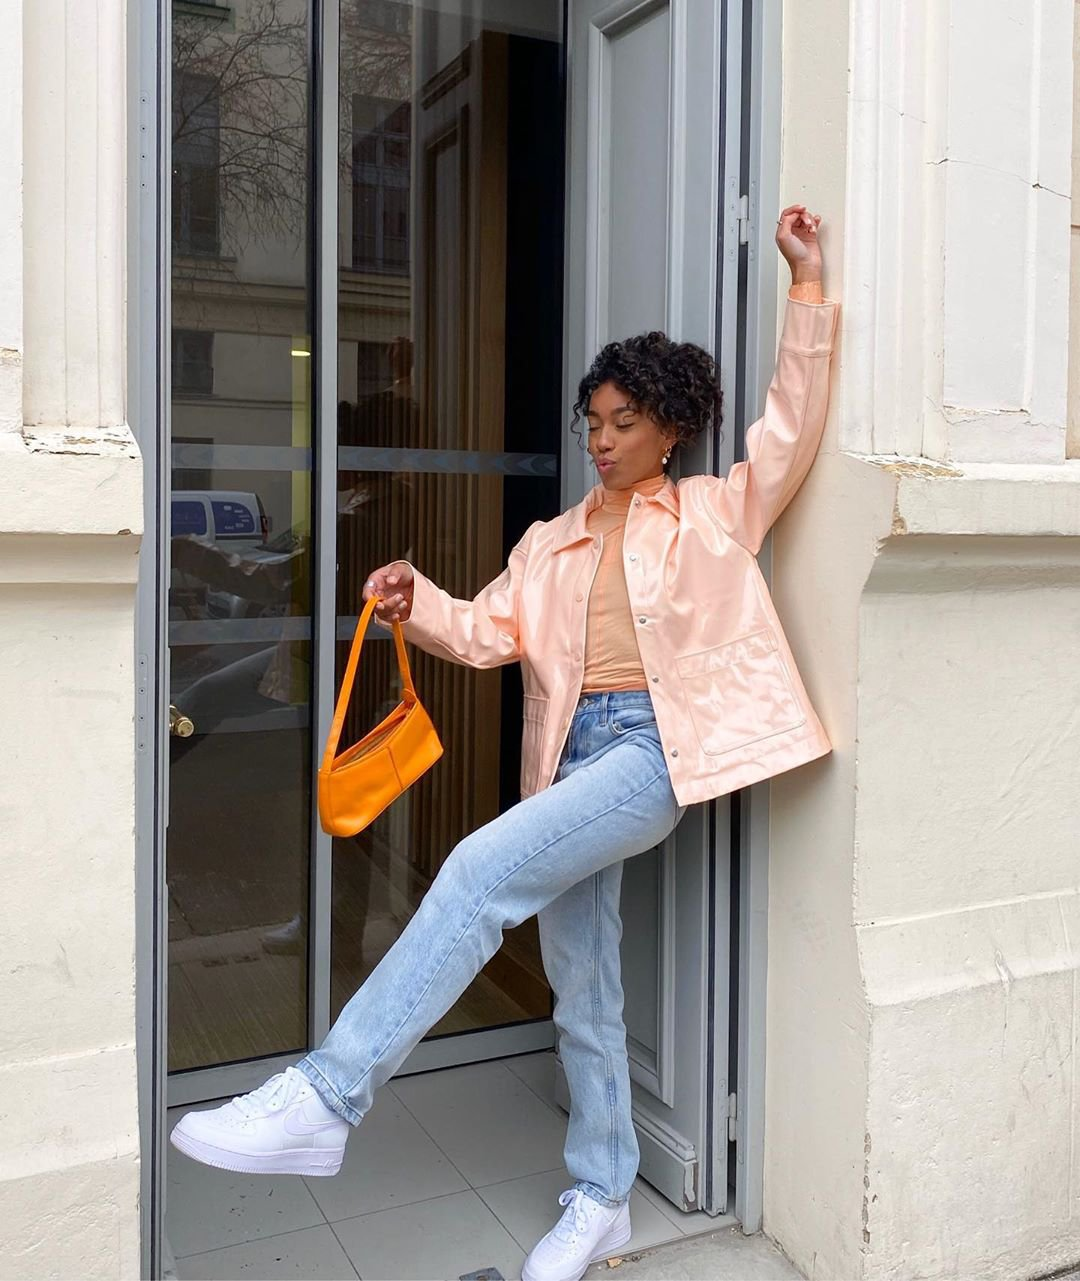 It girls - Jaqueta - Nylon - Outono - Street Style - https://stealthelook.com.br